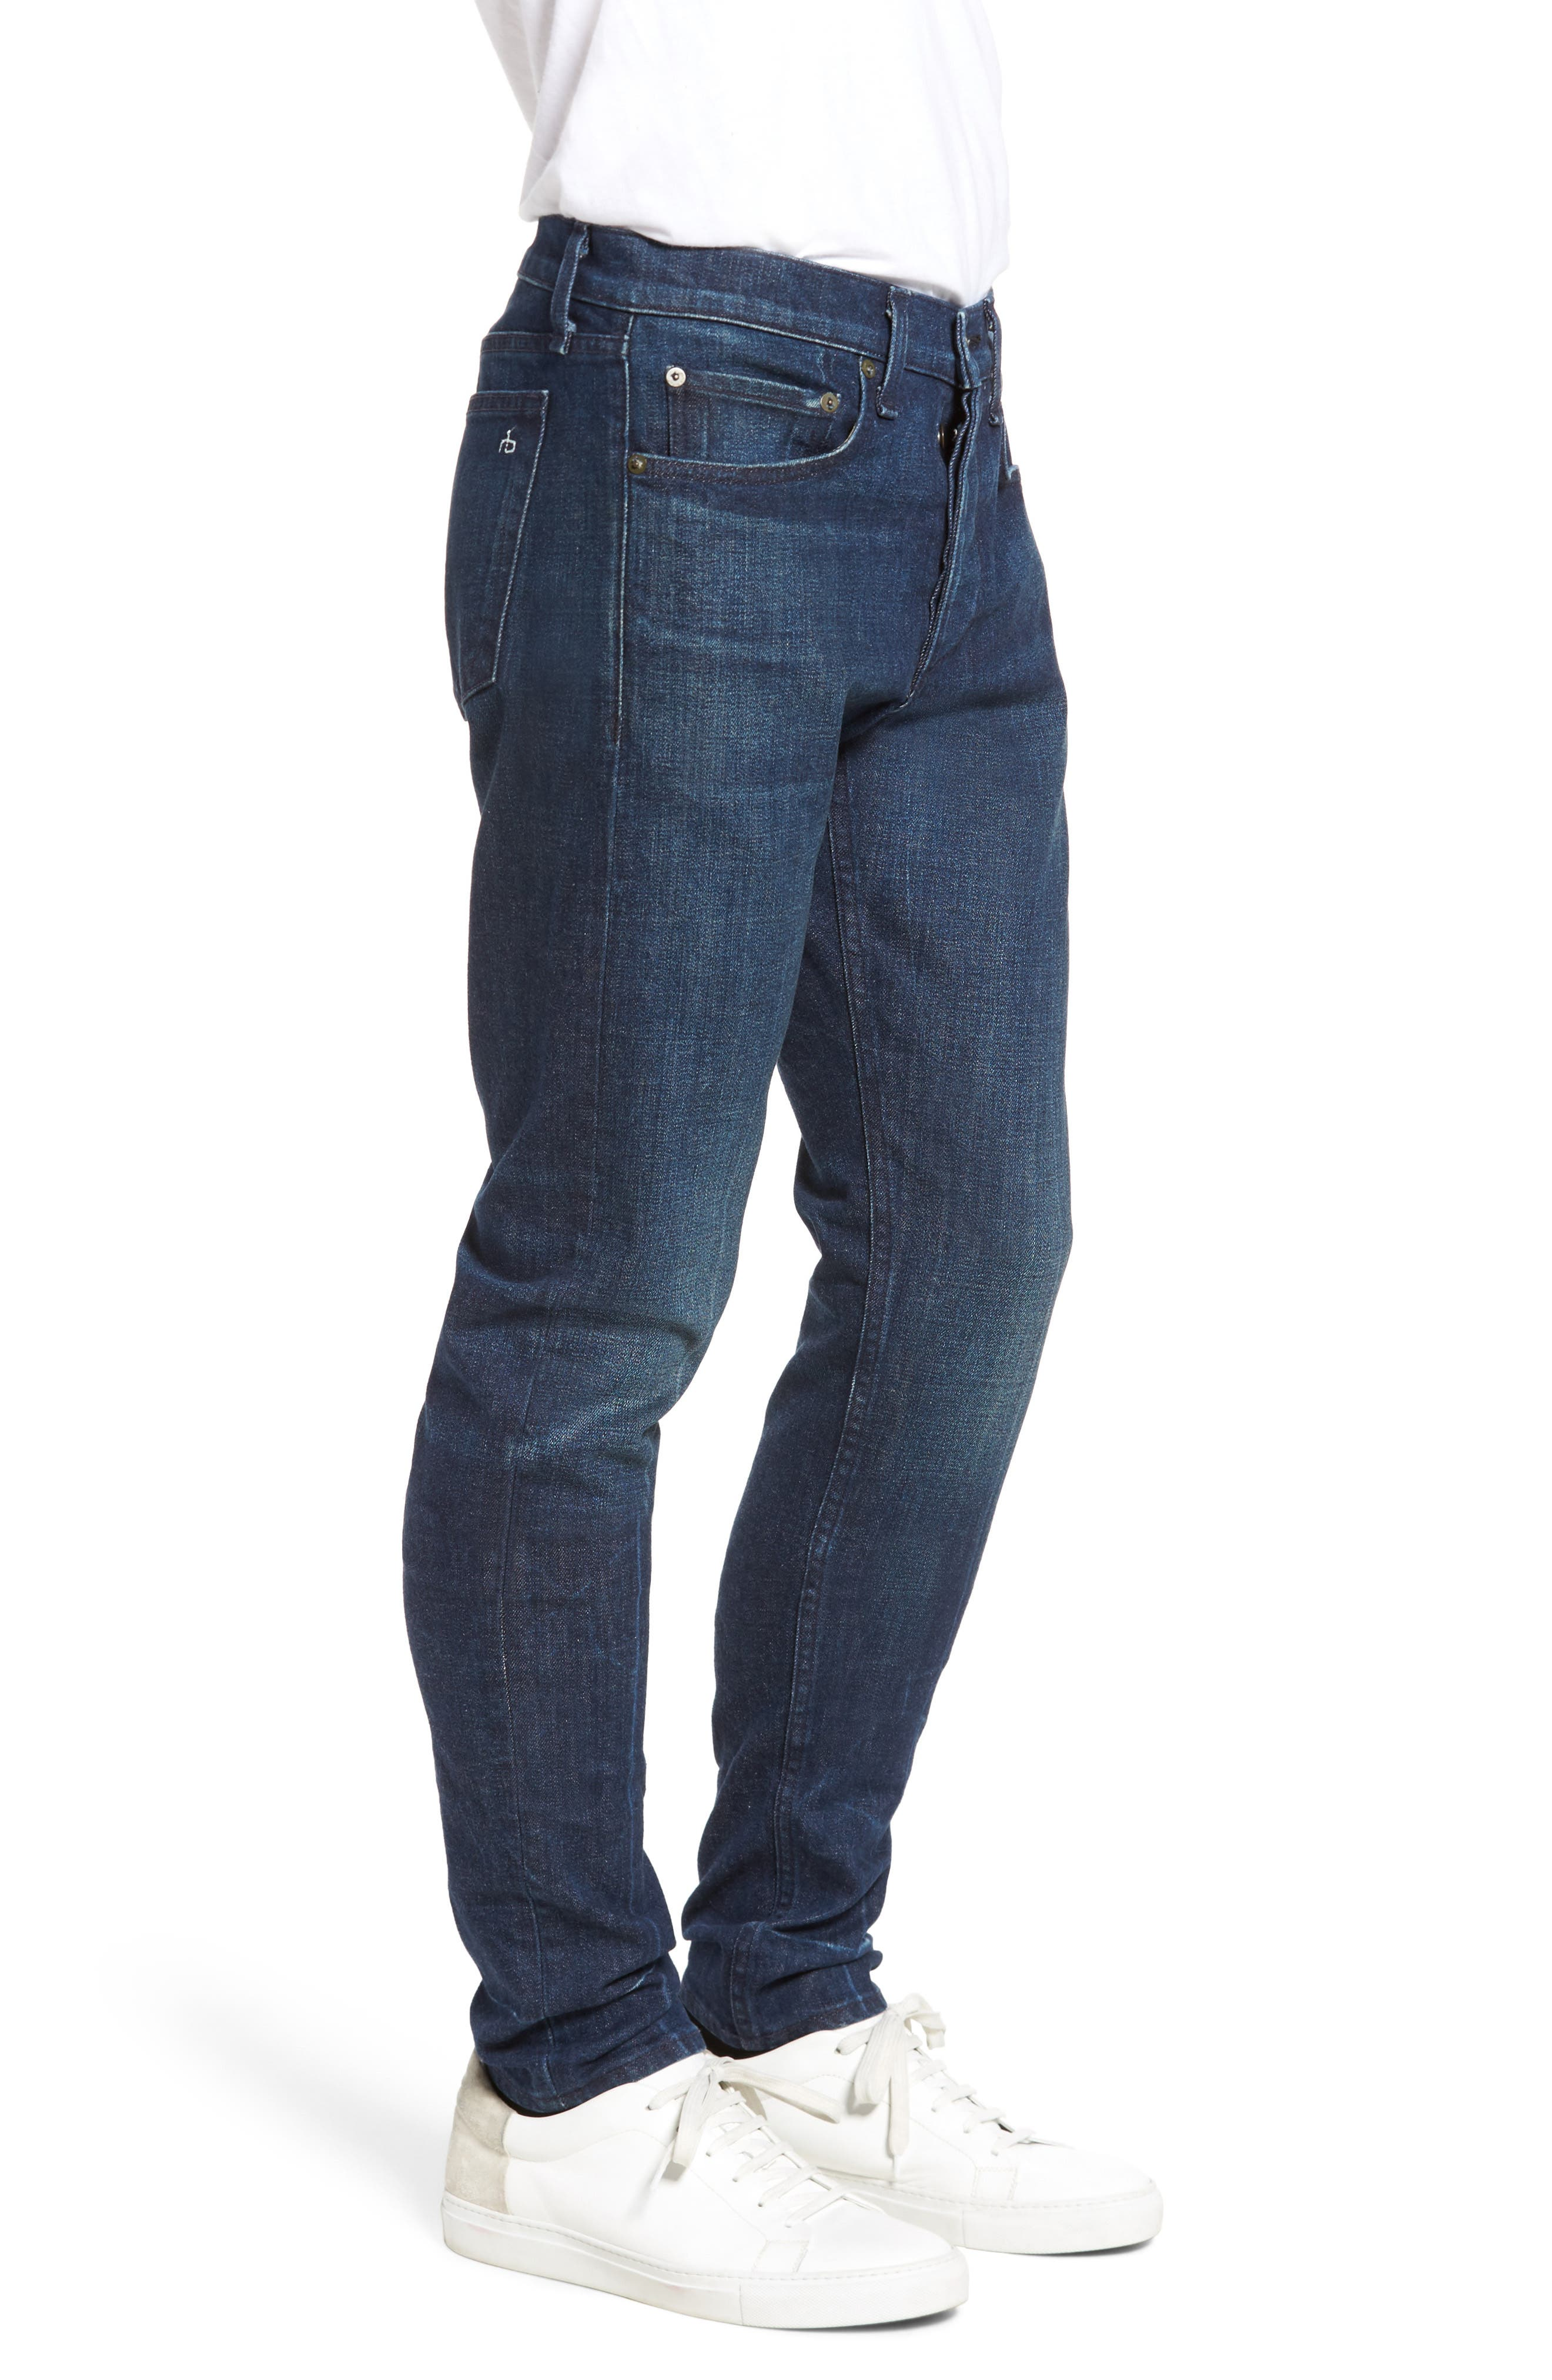 Fit 1 Skinny Fit Jeans,                             Alternate thumbnail 3, color,                             Snaps